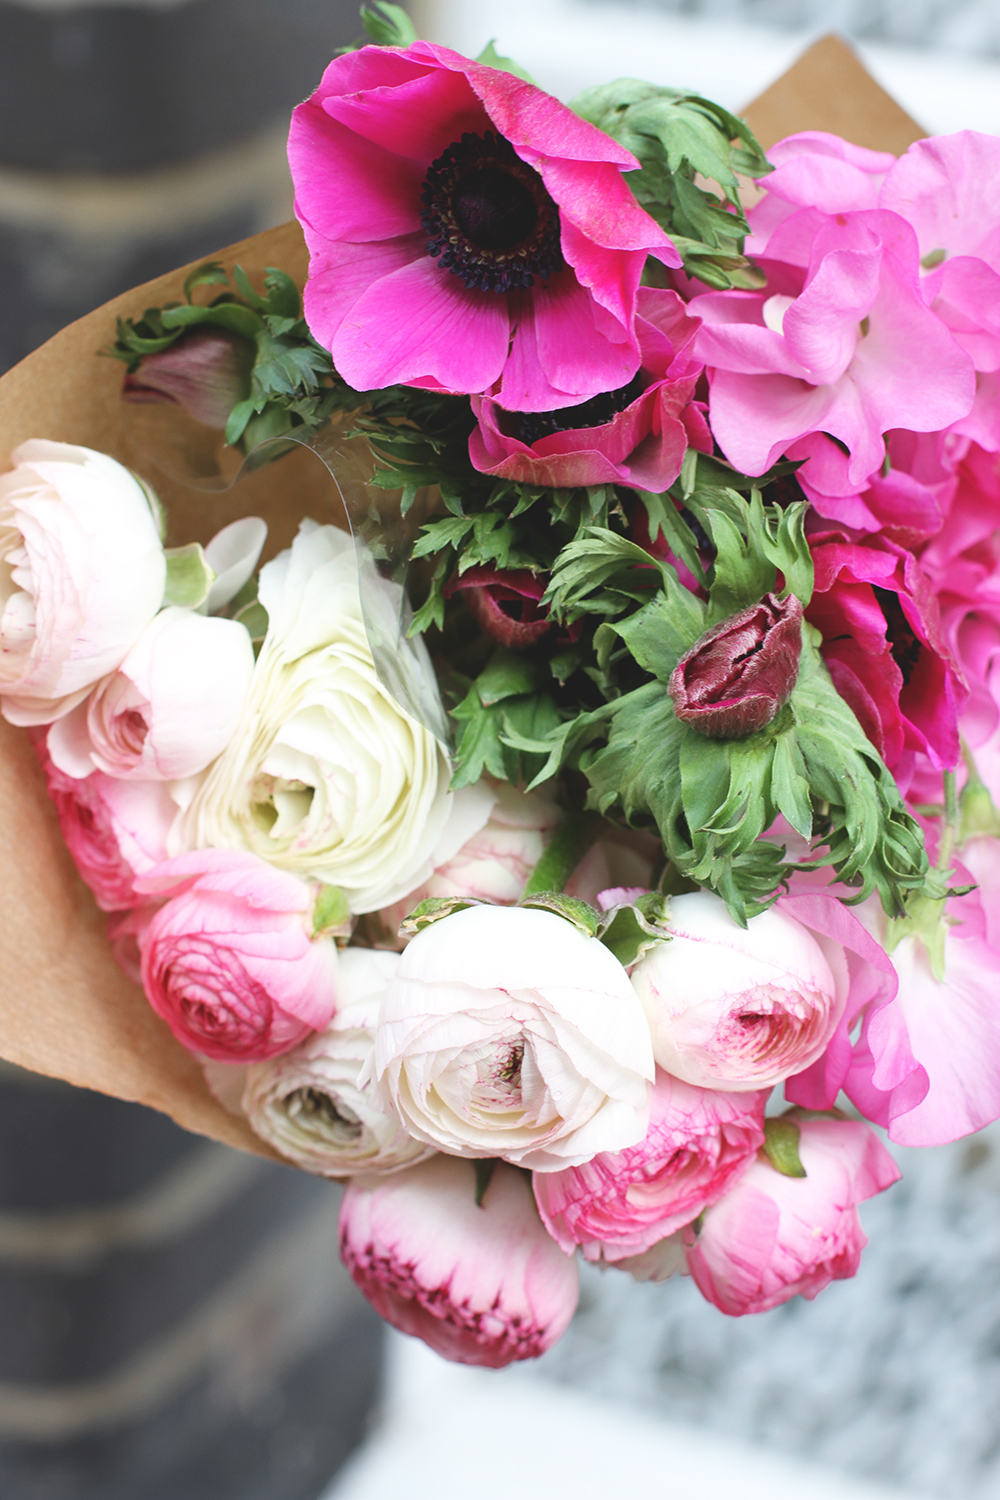 Rubelle || Columbia Road Flower Market